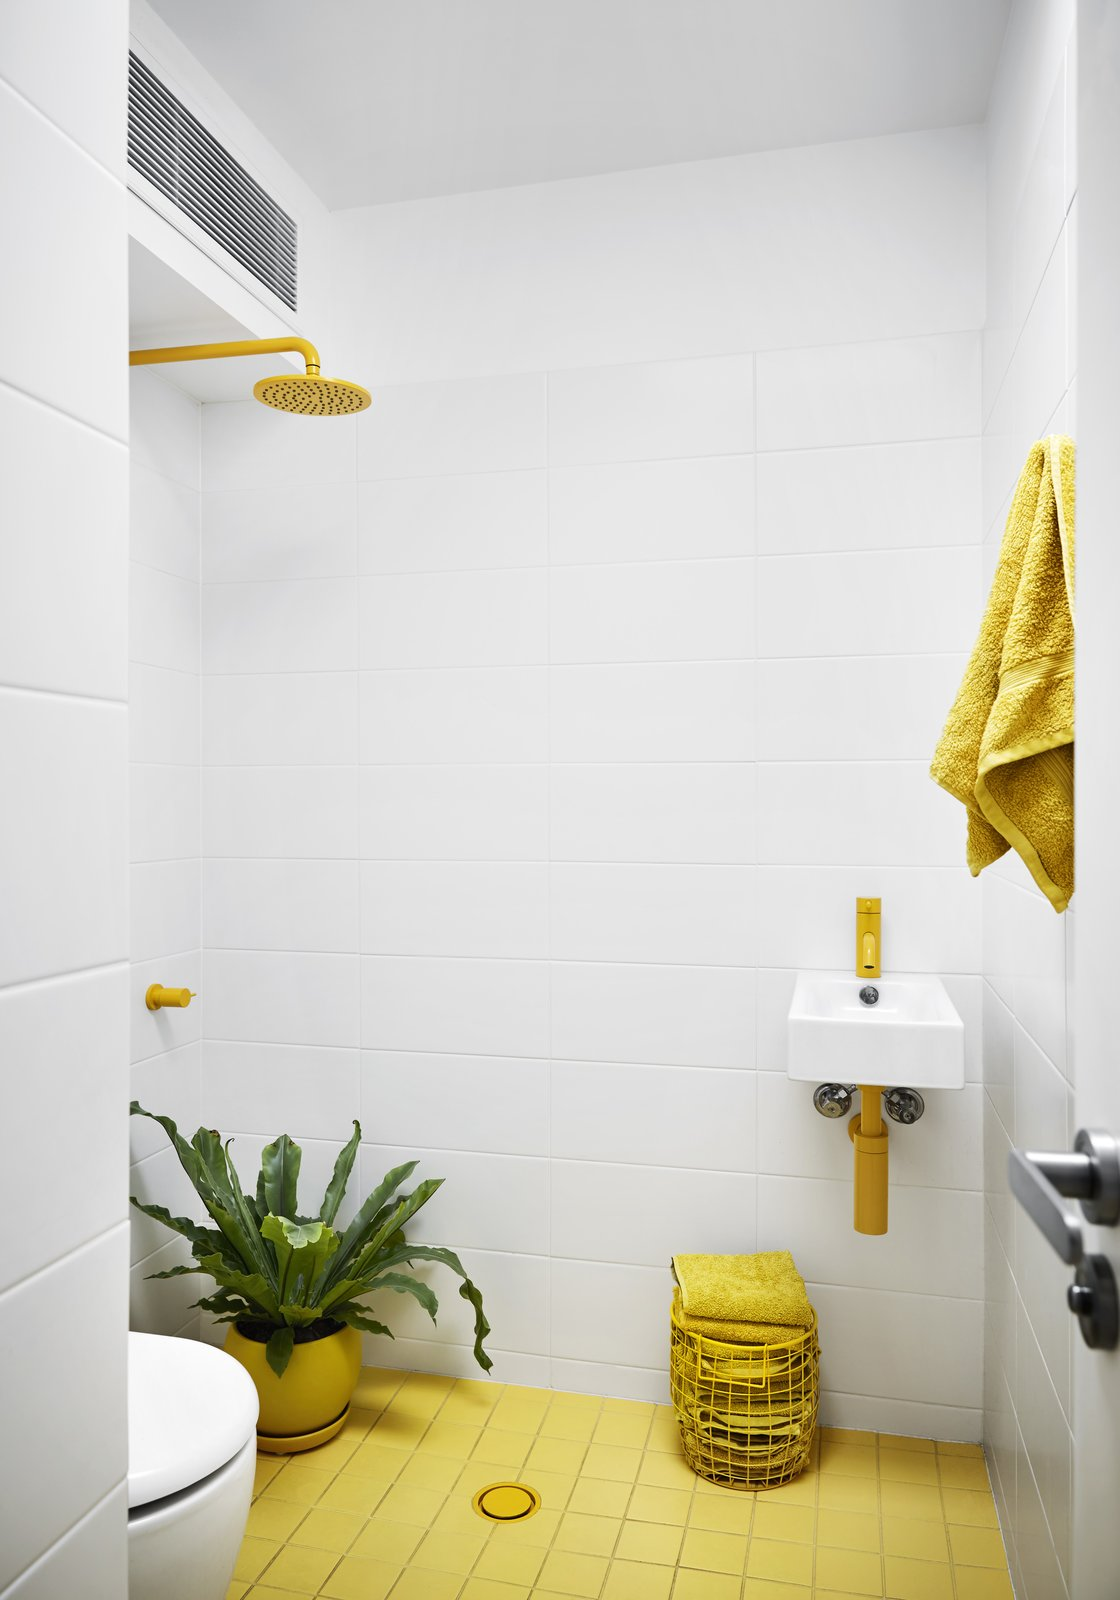 Bath Room, Ceramic Tile Floor, Wall Mount Sink, Open Shower, and Ceramic Tile Wall  Photo 8 of 12 in An Architect Turns His Victorian Home Into a Sun-Drenched Live/Work Space